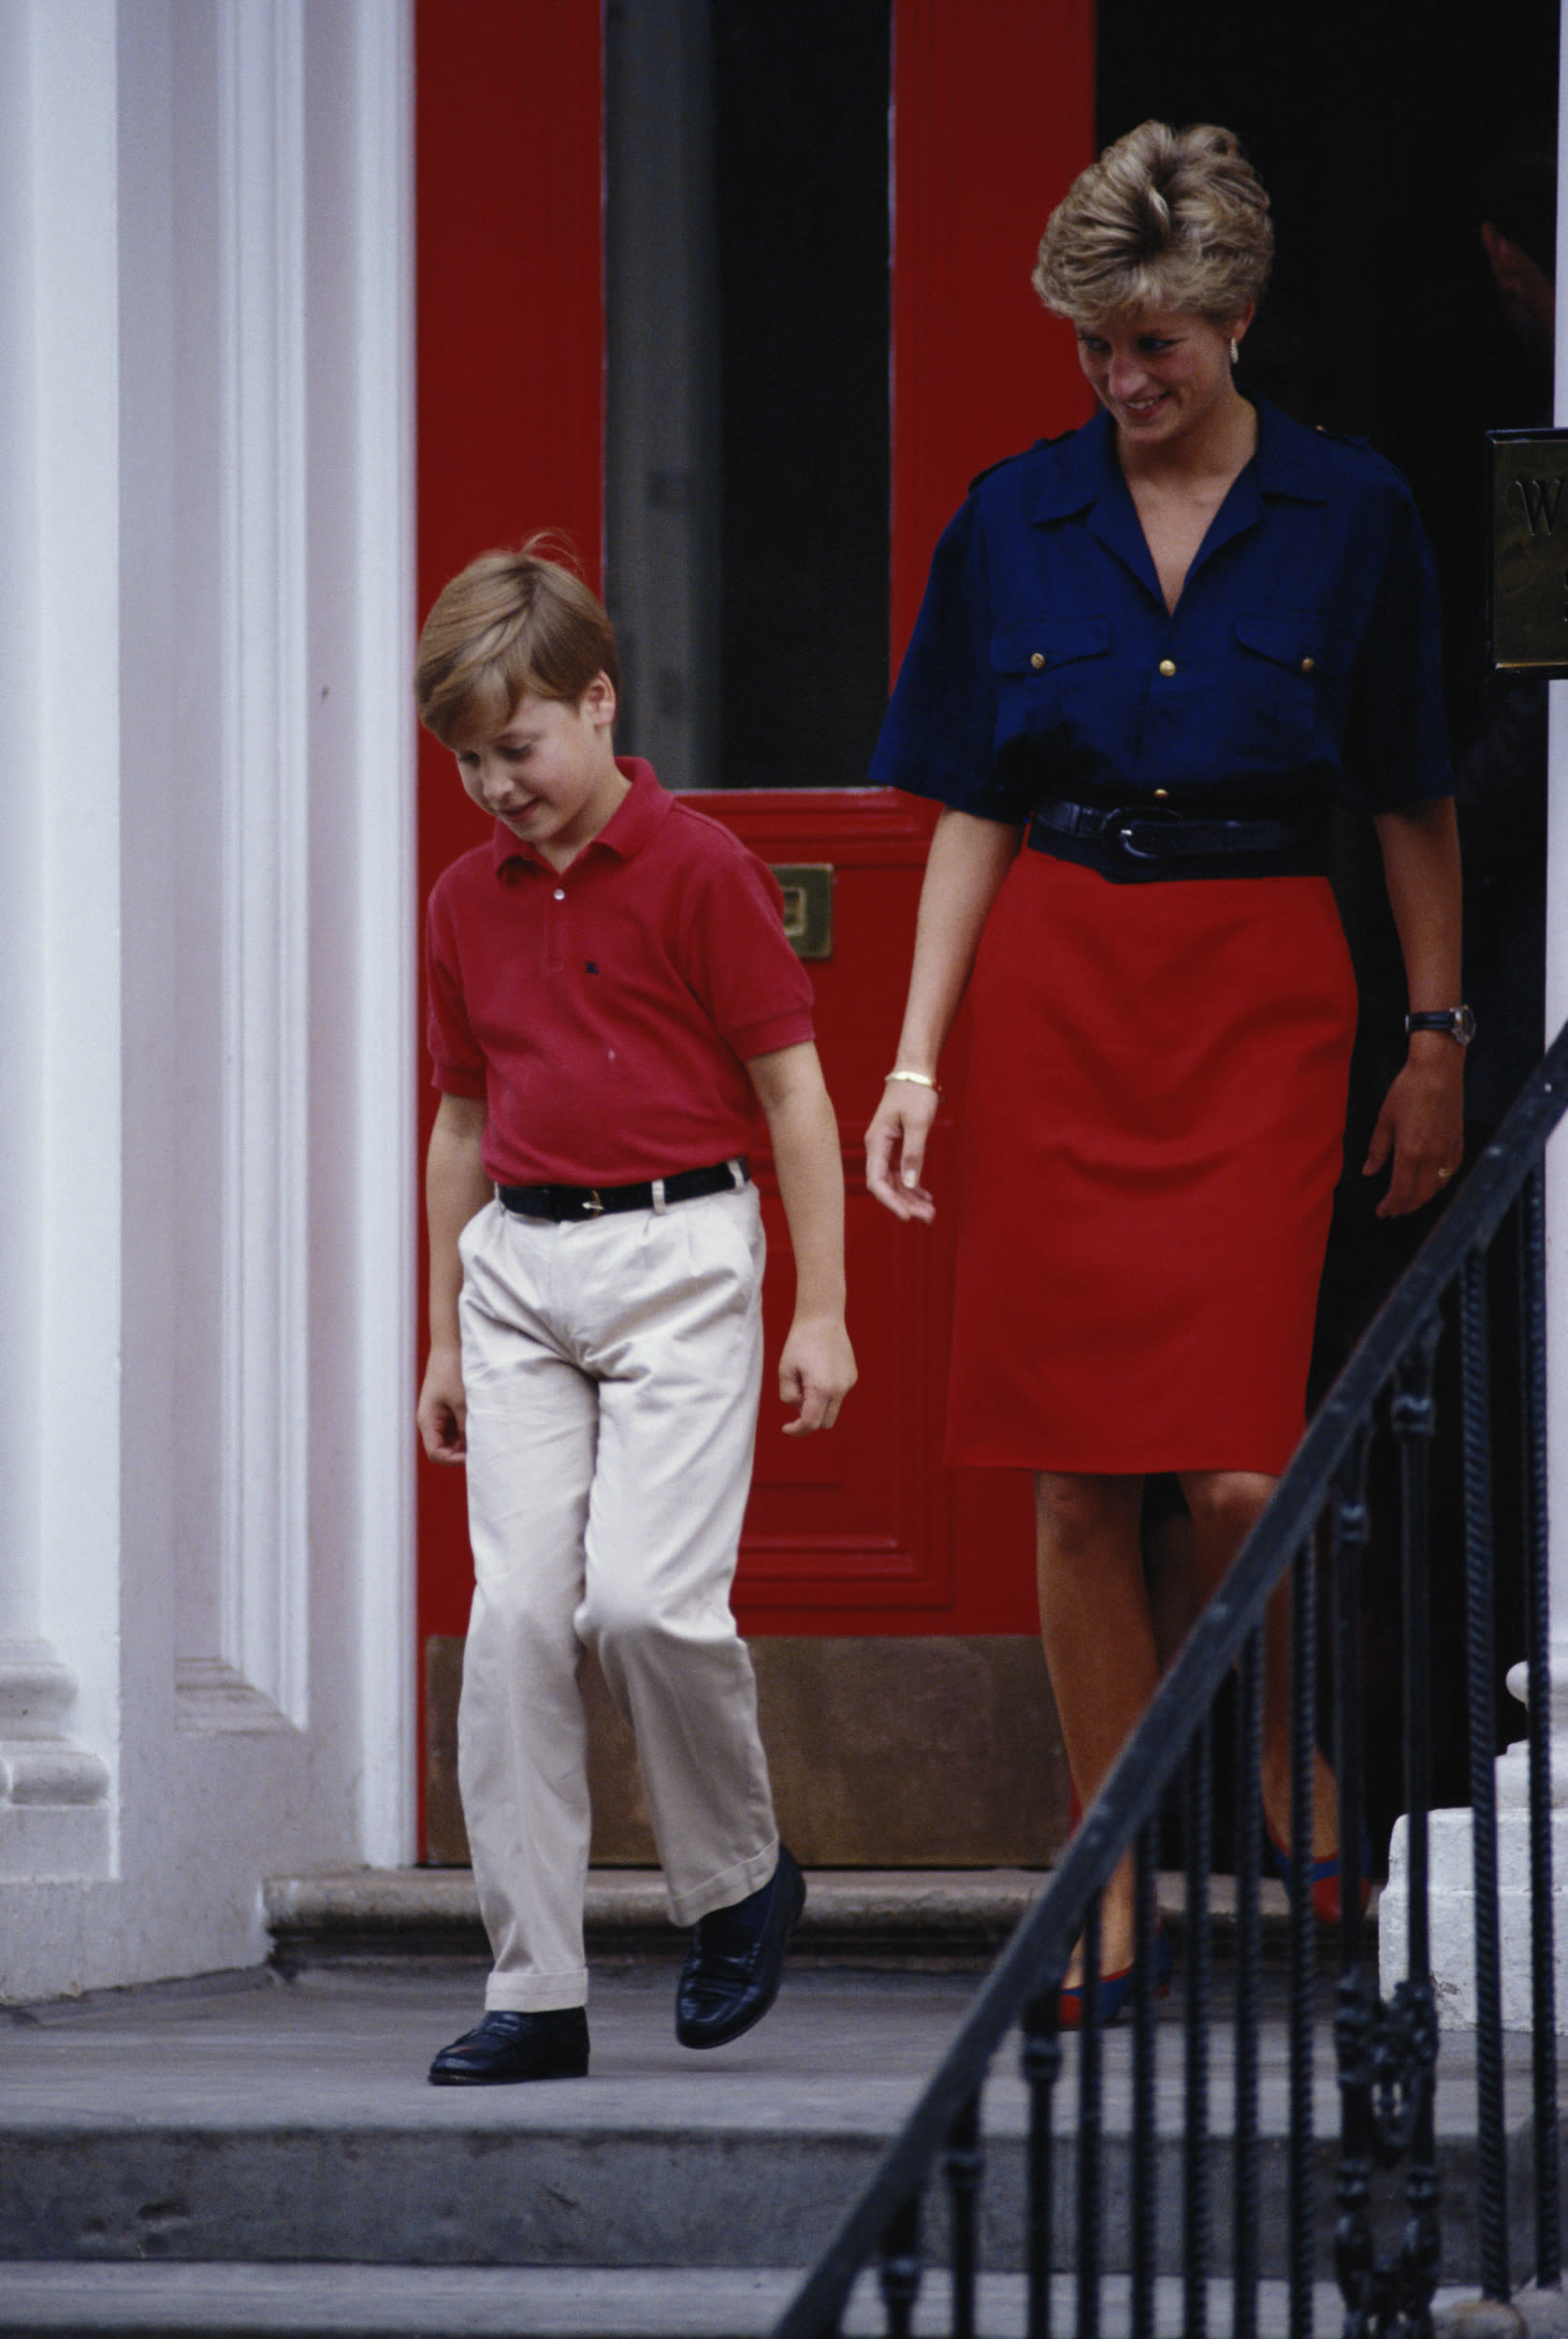 Diana, Princess of Wales (1961 - 1997) leaves Wetherby School in London with Prince William, having dropped off her younger son, Prince Harry, 5th September 1991. (Photo by Tim Graham/Getty Images)